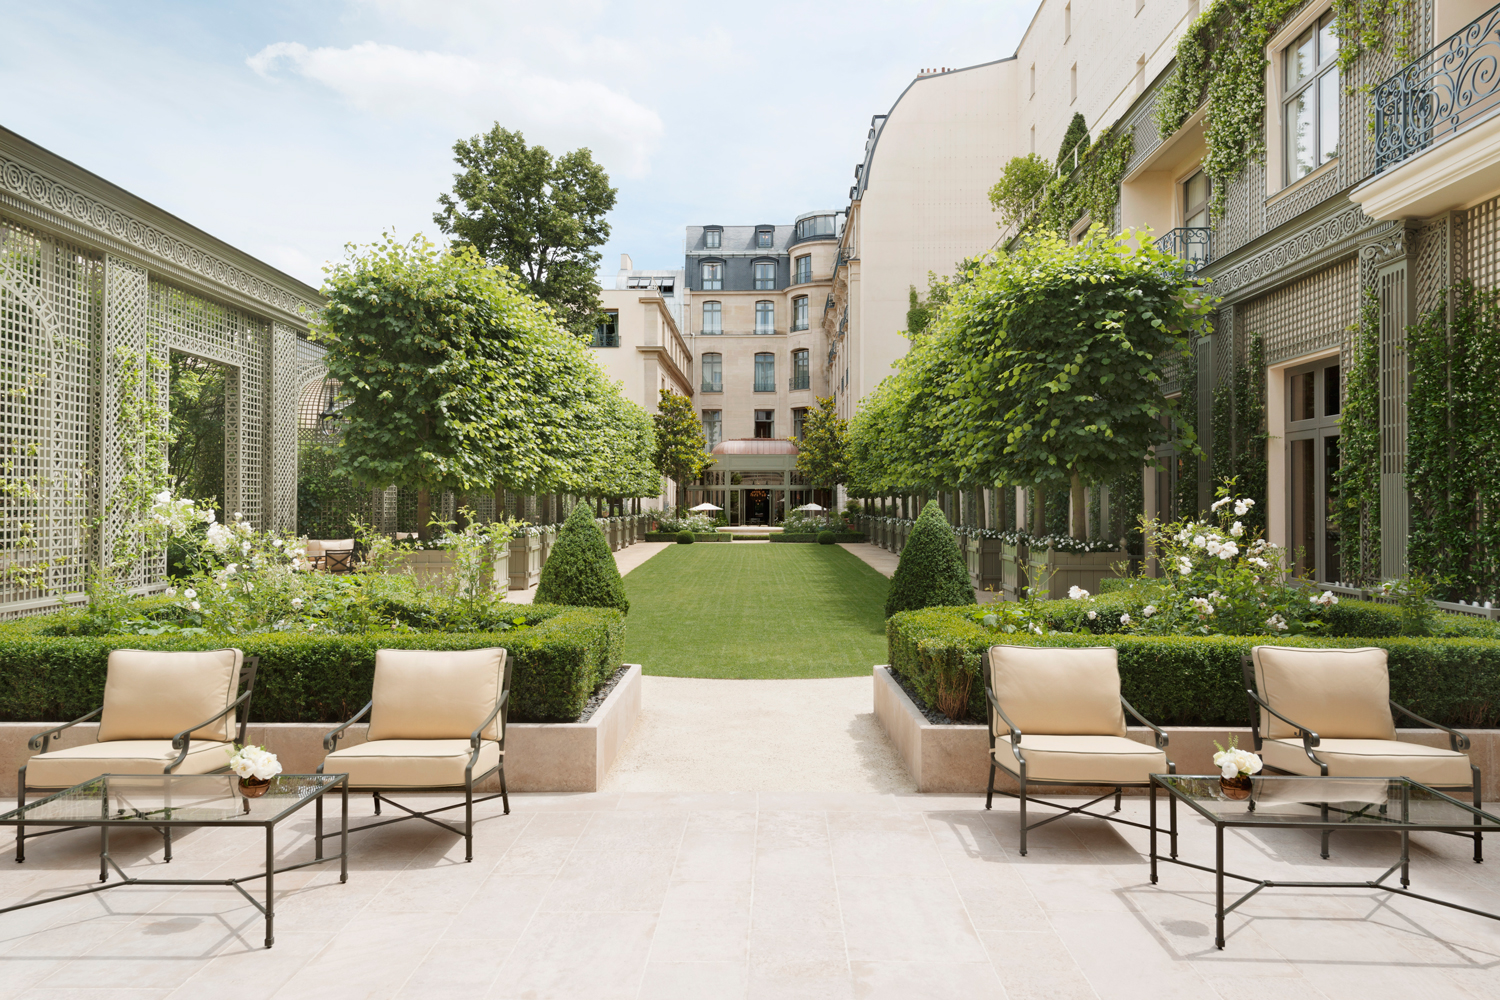 Le-Ritz-Paris-5-Grand-Jardin